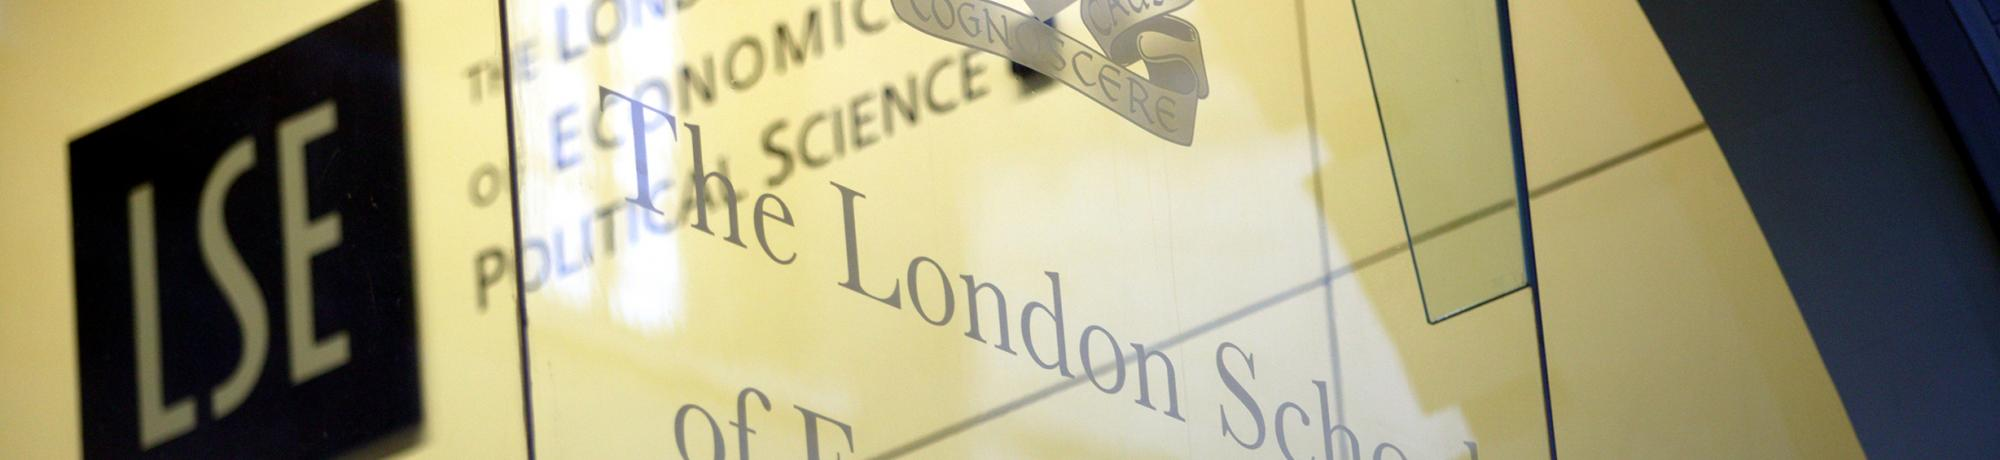 UC Davis Study Abroad, Quarter Abroad UK, Political Science at the London School of Economics Program, Header Image, Overview Page